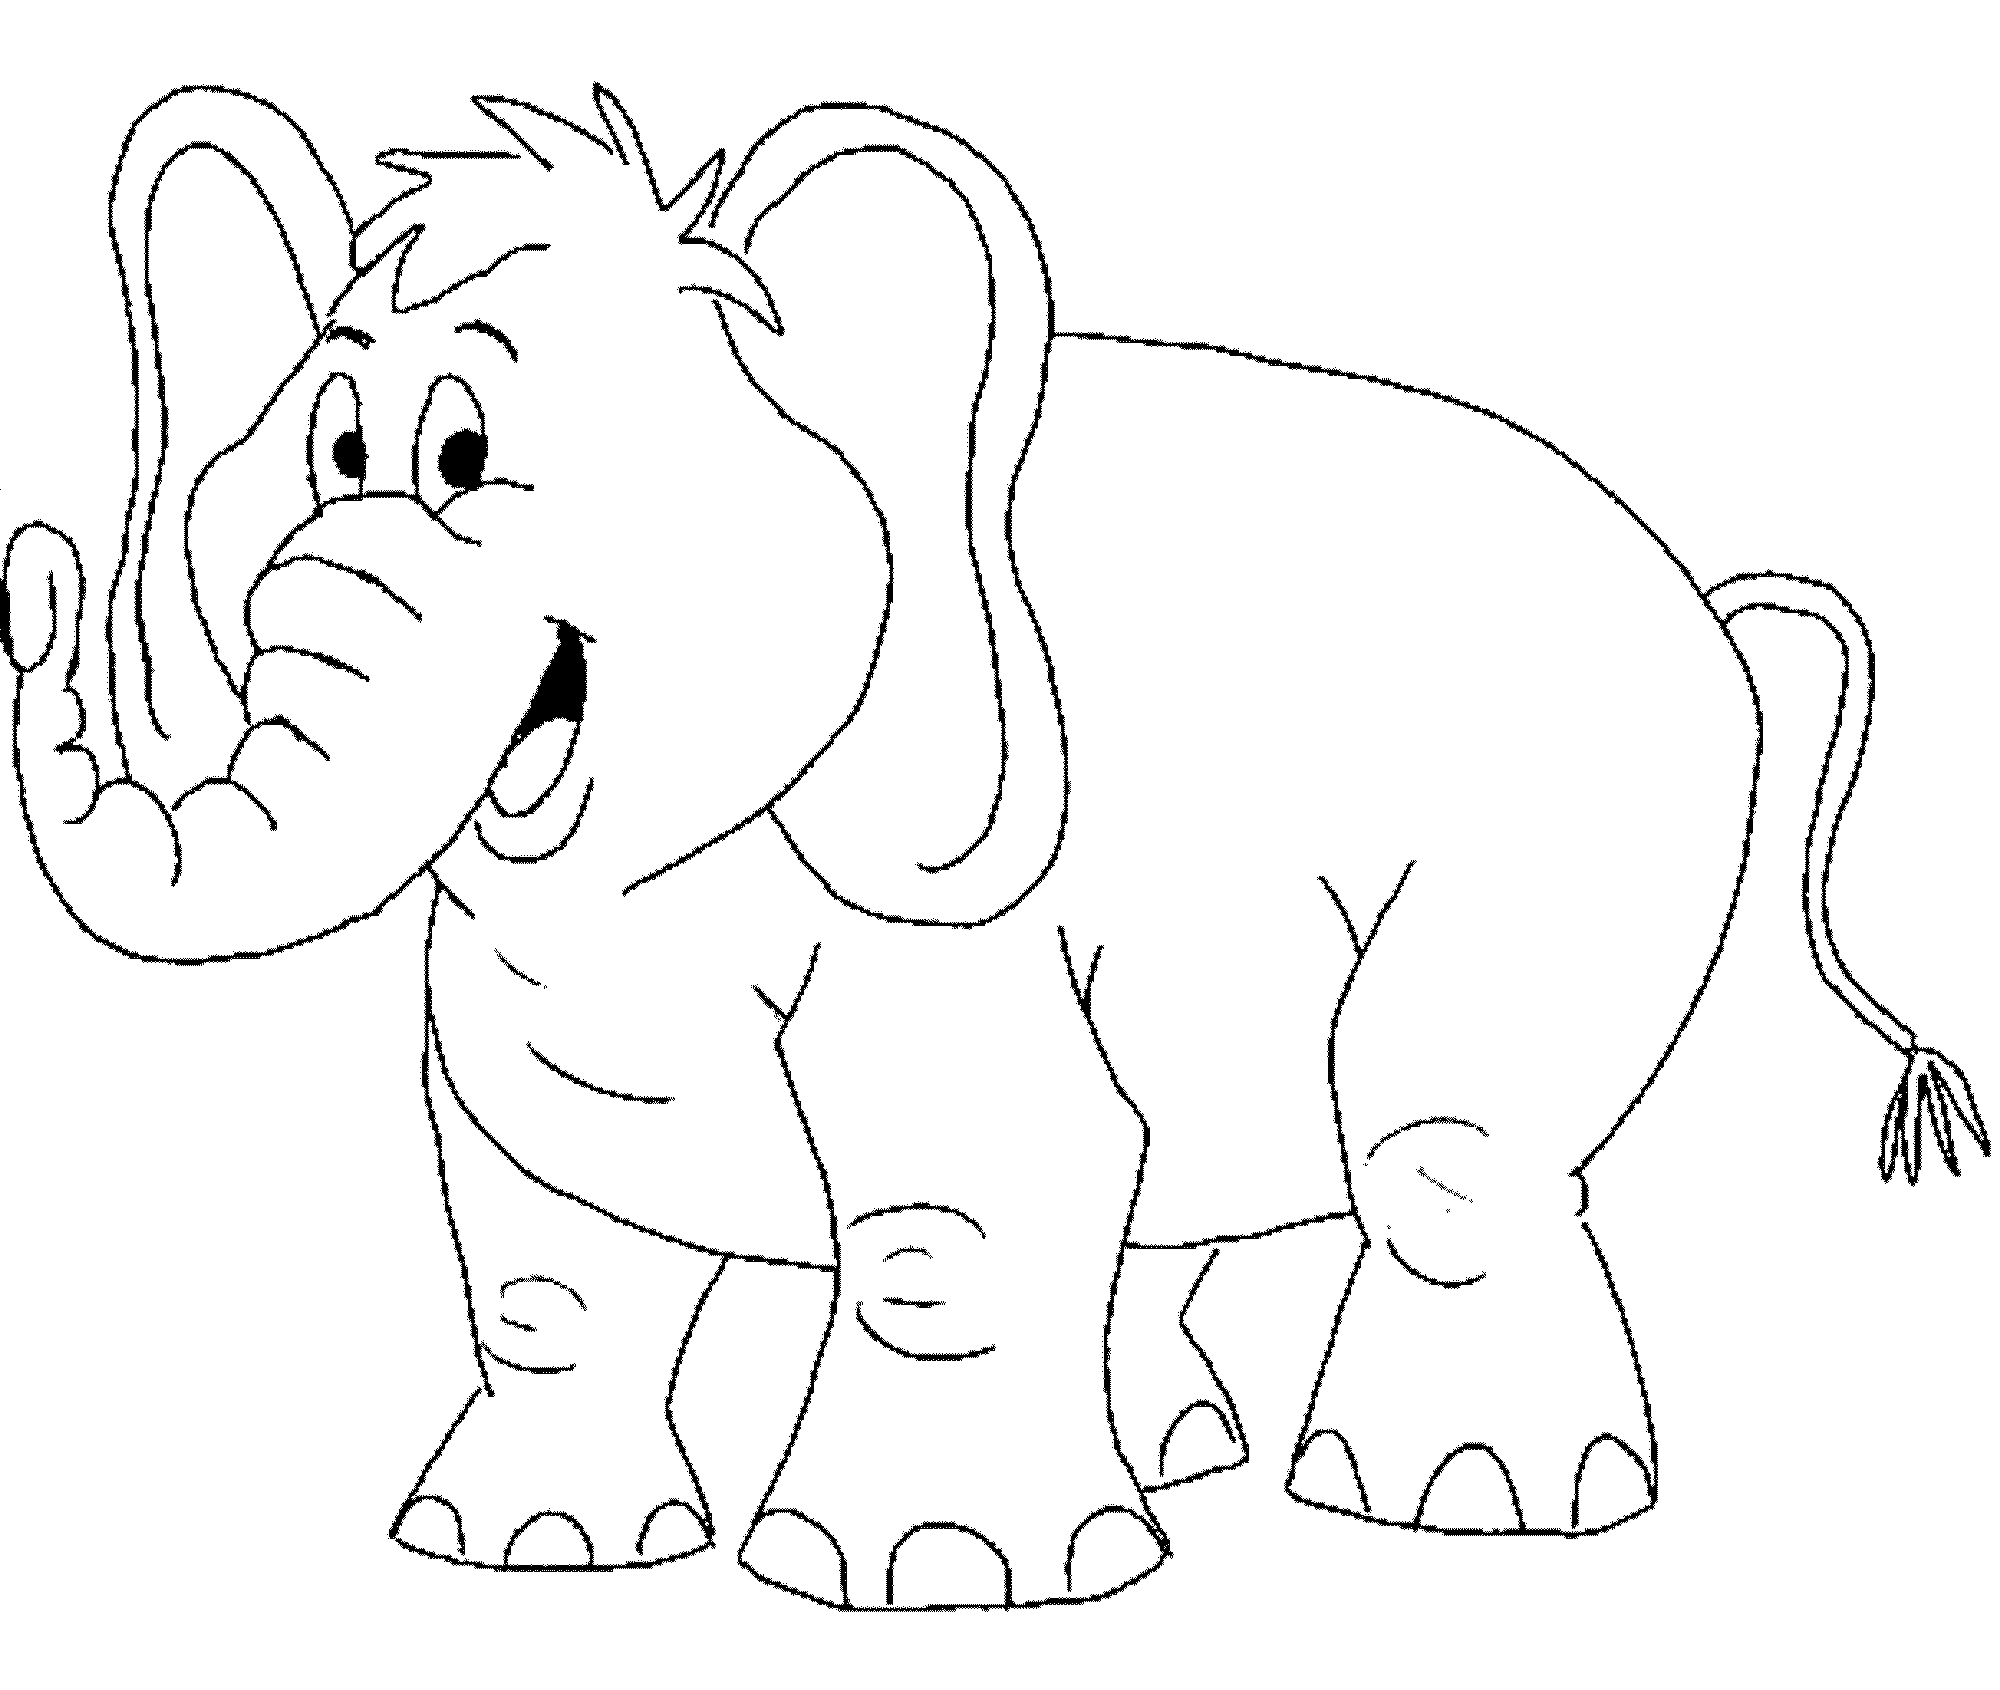 coloring sheets elephant print download teaching kids through elephant coloring elephant sheets coloring